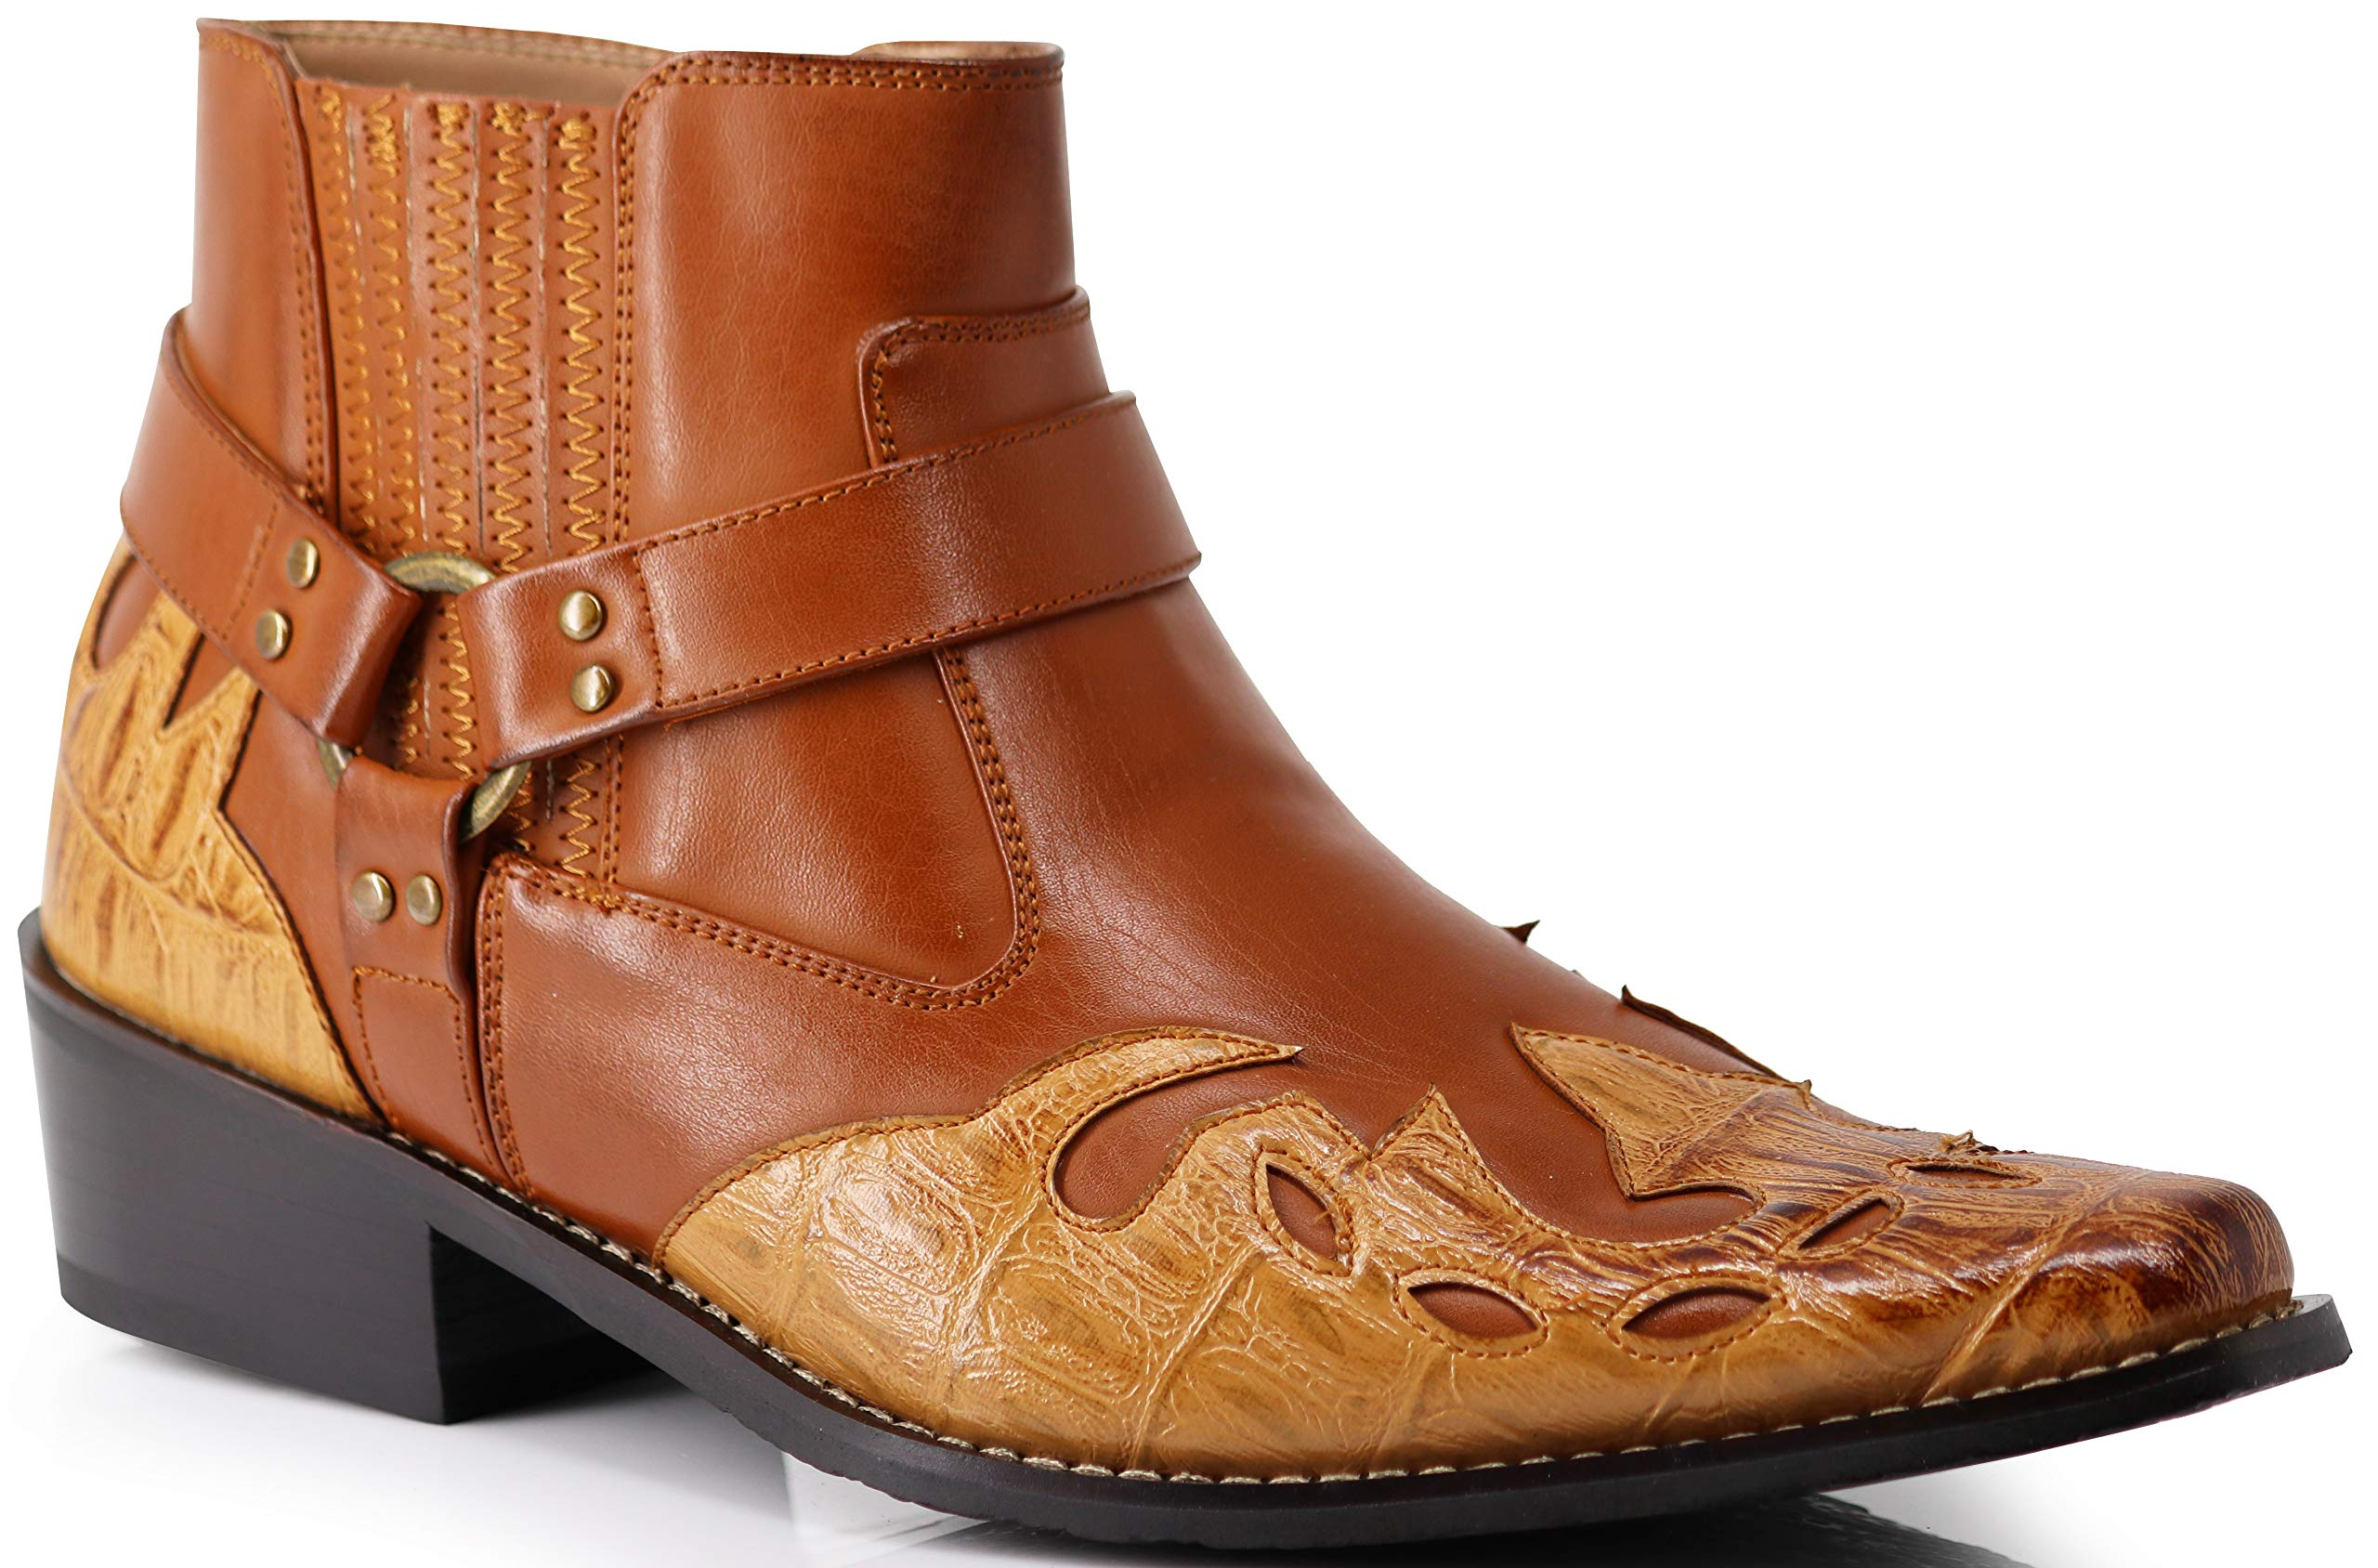 Enzo Romeo WT11 Men's Western Cowboy Motorcycle Ankle Boots (11 D(M) US, Brown)